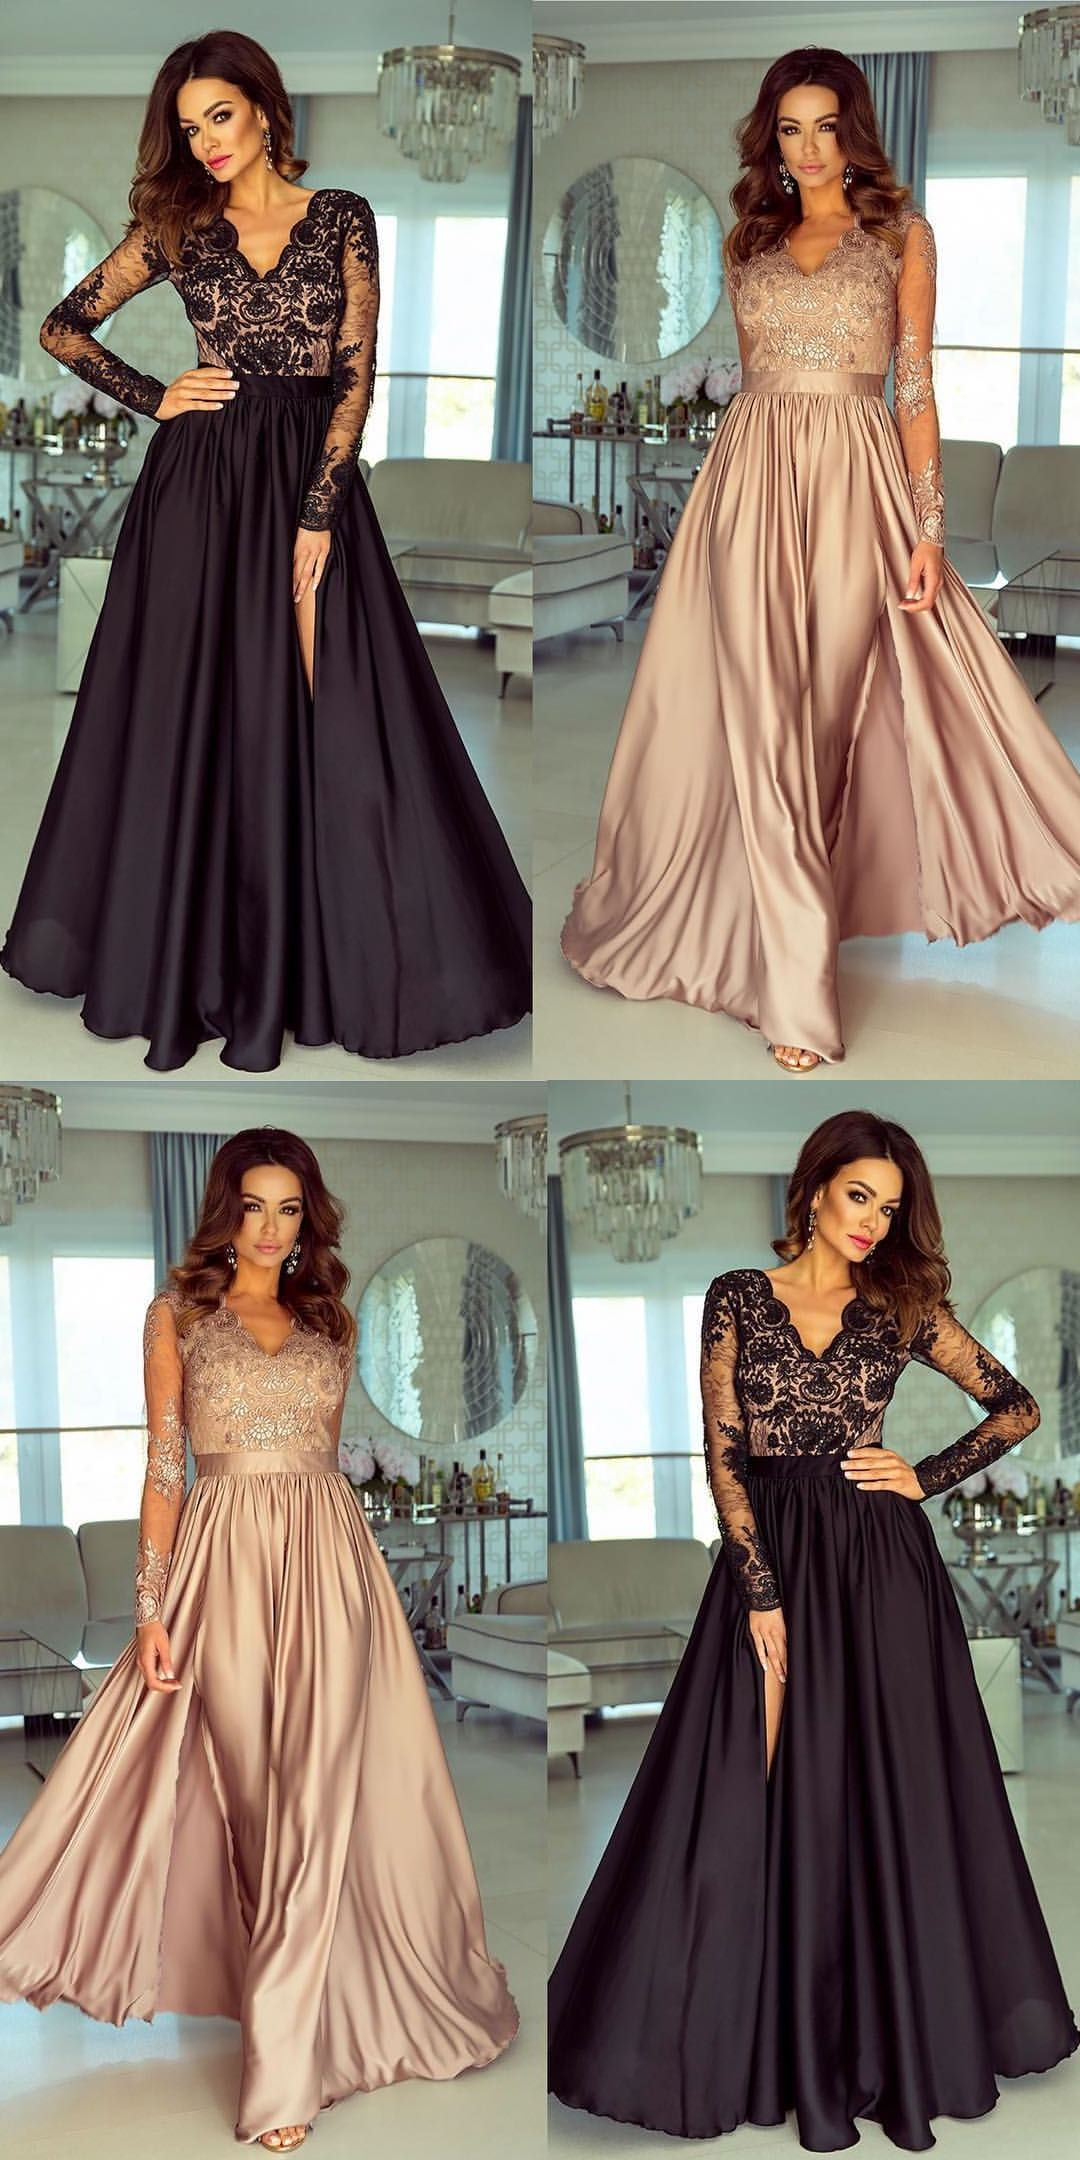 Simple Blush Satin Long Prom Dresses For Teenss Cheap Long Sleeves Evening Party Dresses Dressyw Split Prom Dresses Blush Prom Dress Prom Dresses With Sleeves